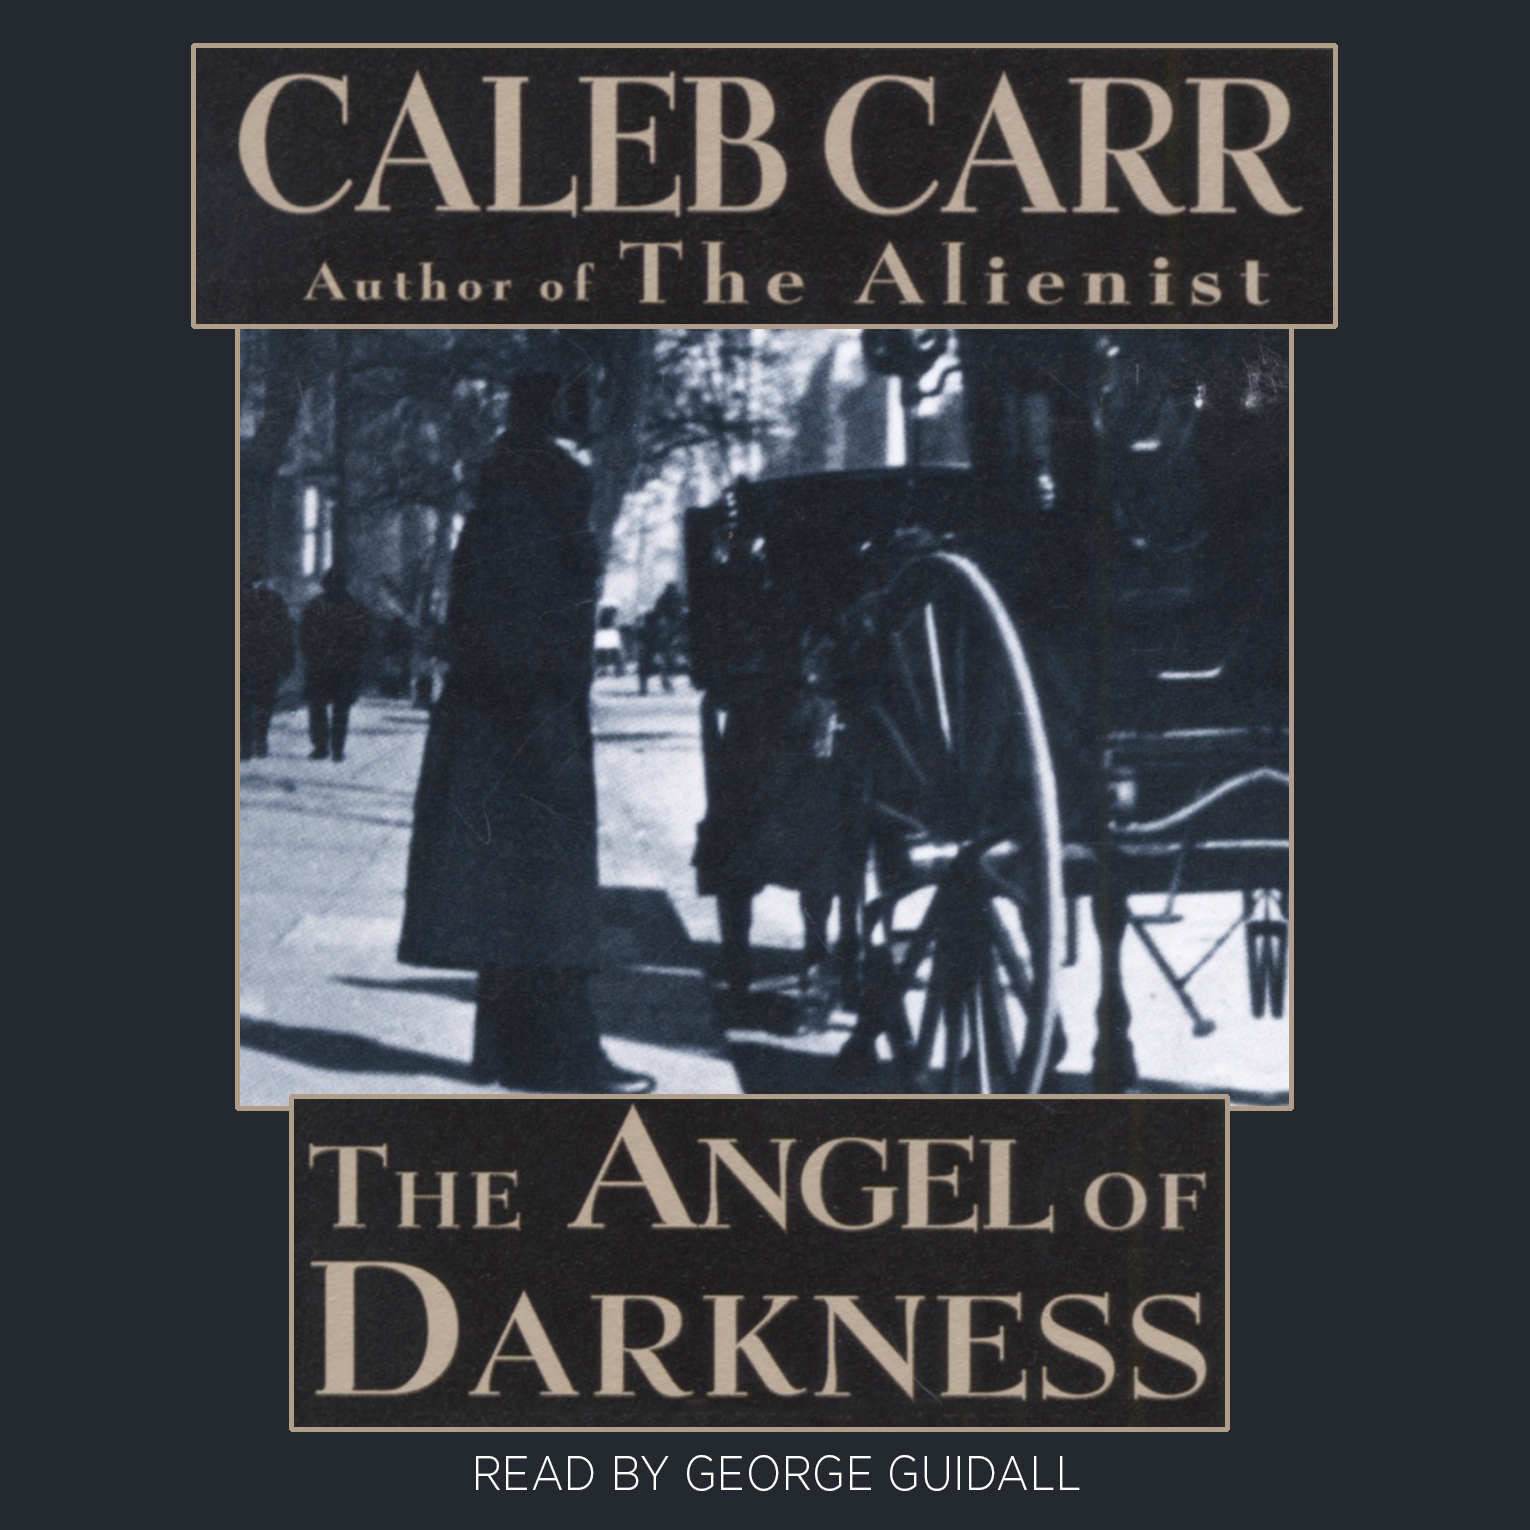 a literary analysis of the alienist a novel by caleb carr Best-selling author caleb carr, who lives in the town of berlin, has  20 years to  see a screen adaptation finally get made of his novel the alienist  this year  alone), his savagery toward underlings and his literary bent.